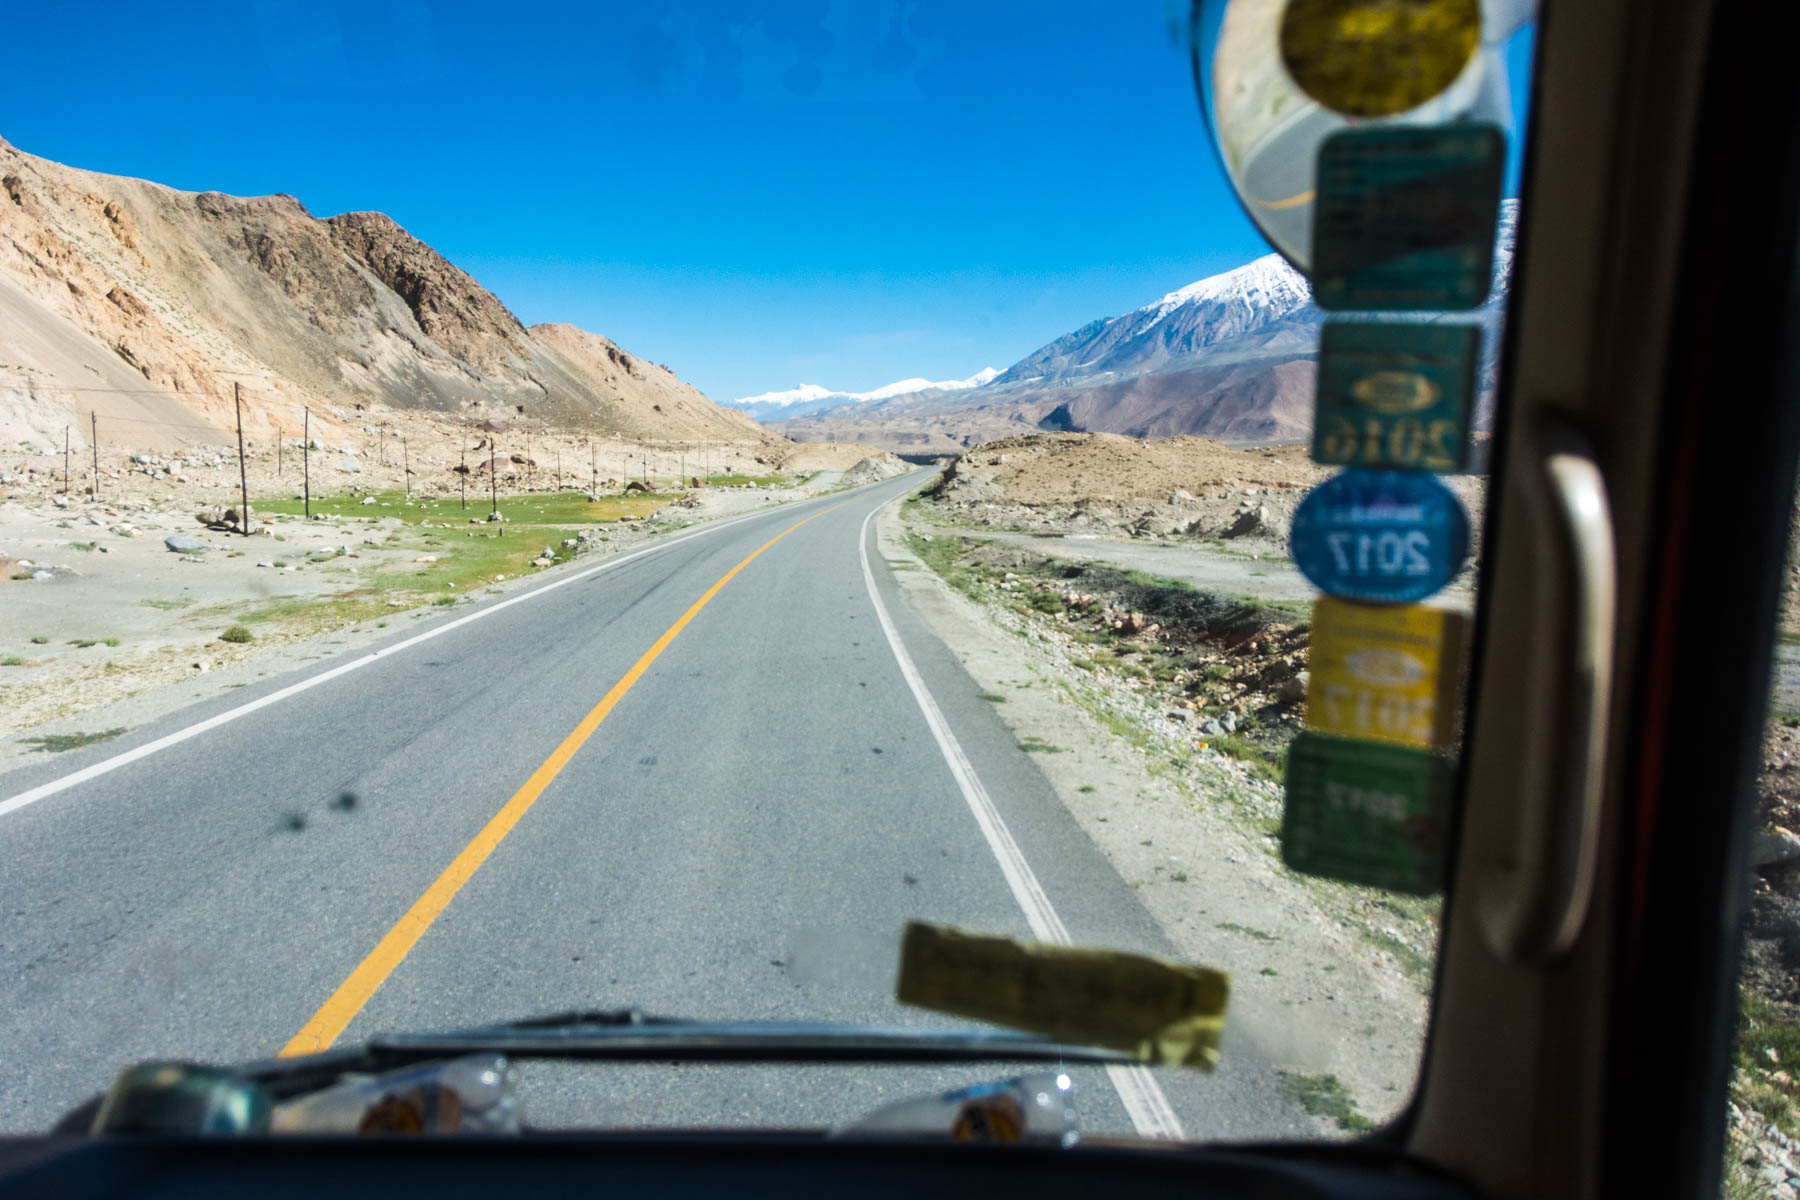 Hitching a ride with a trucker from Karakul Lake to Tashkurgan, China - Lost With Purpose